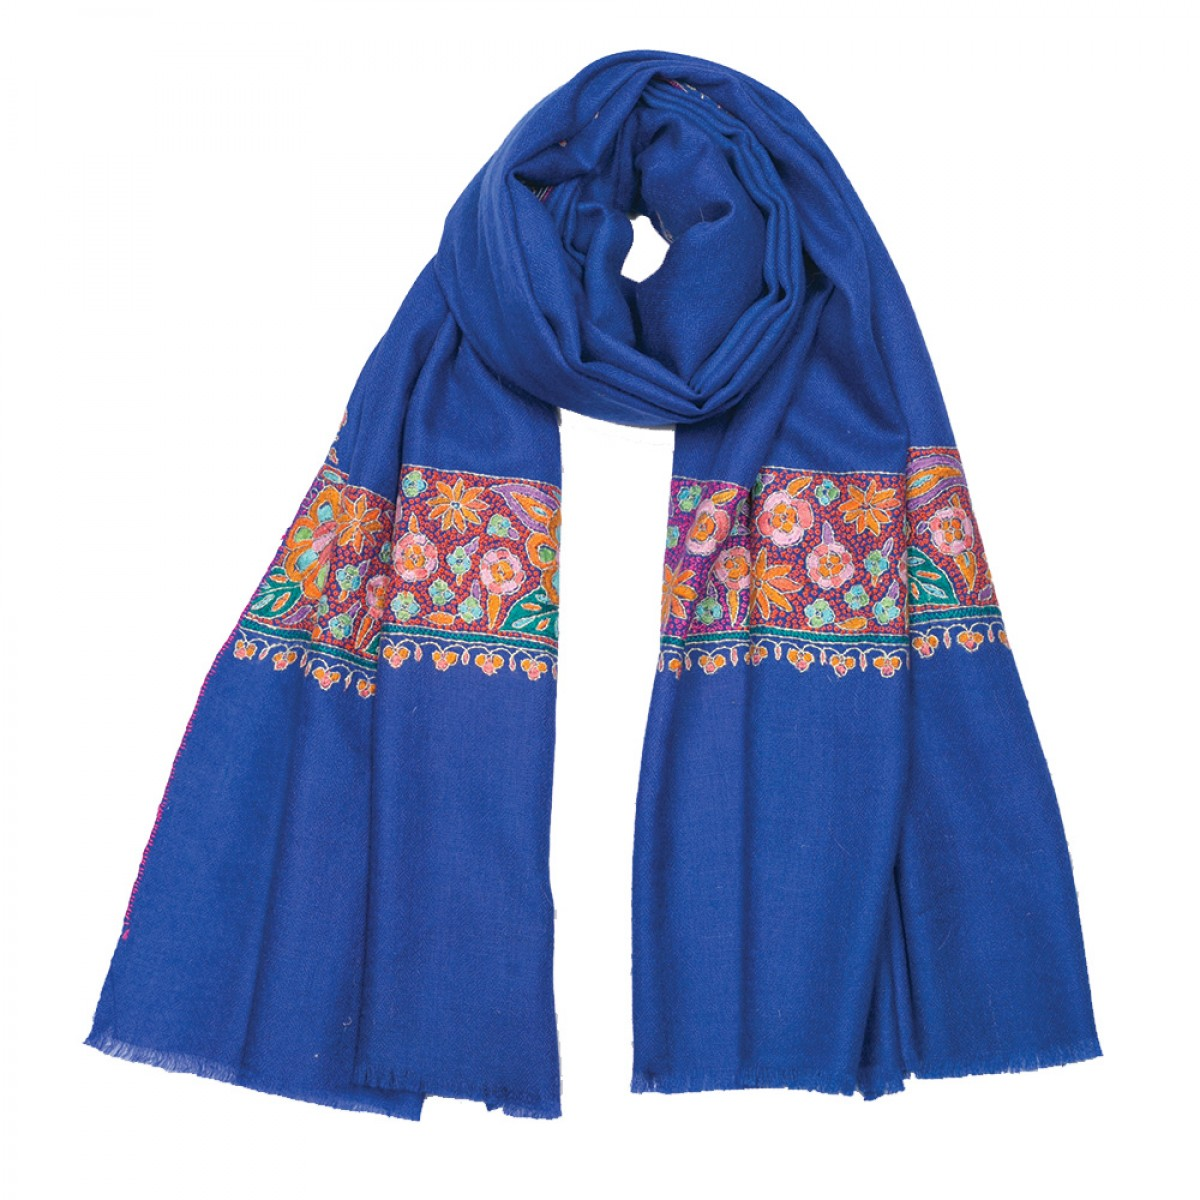 Embroidered Pashmina Stole - Admiral Blue